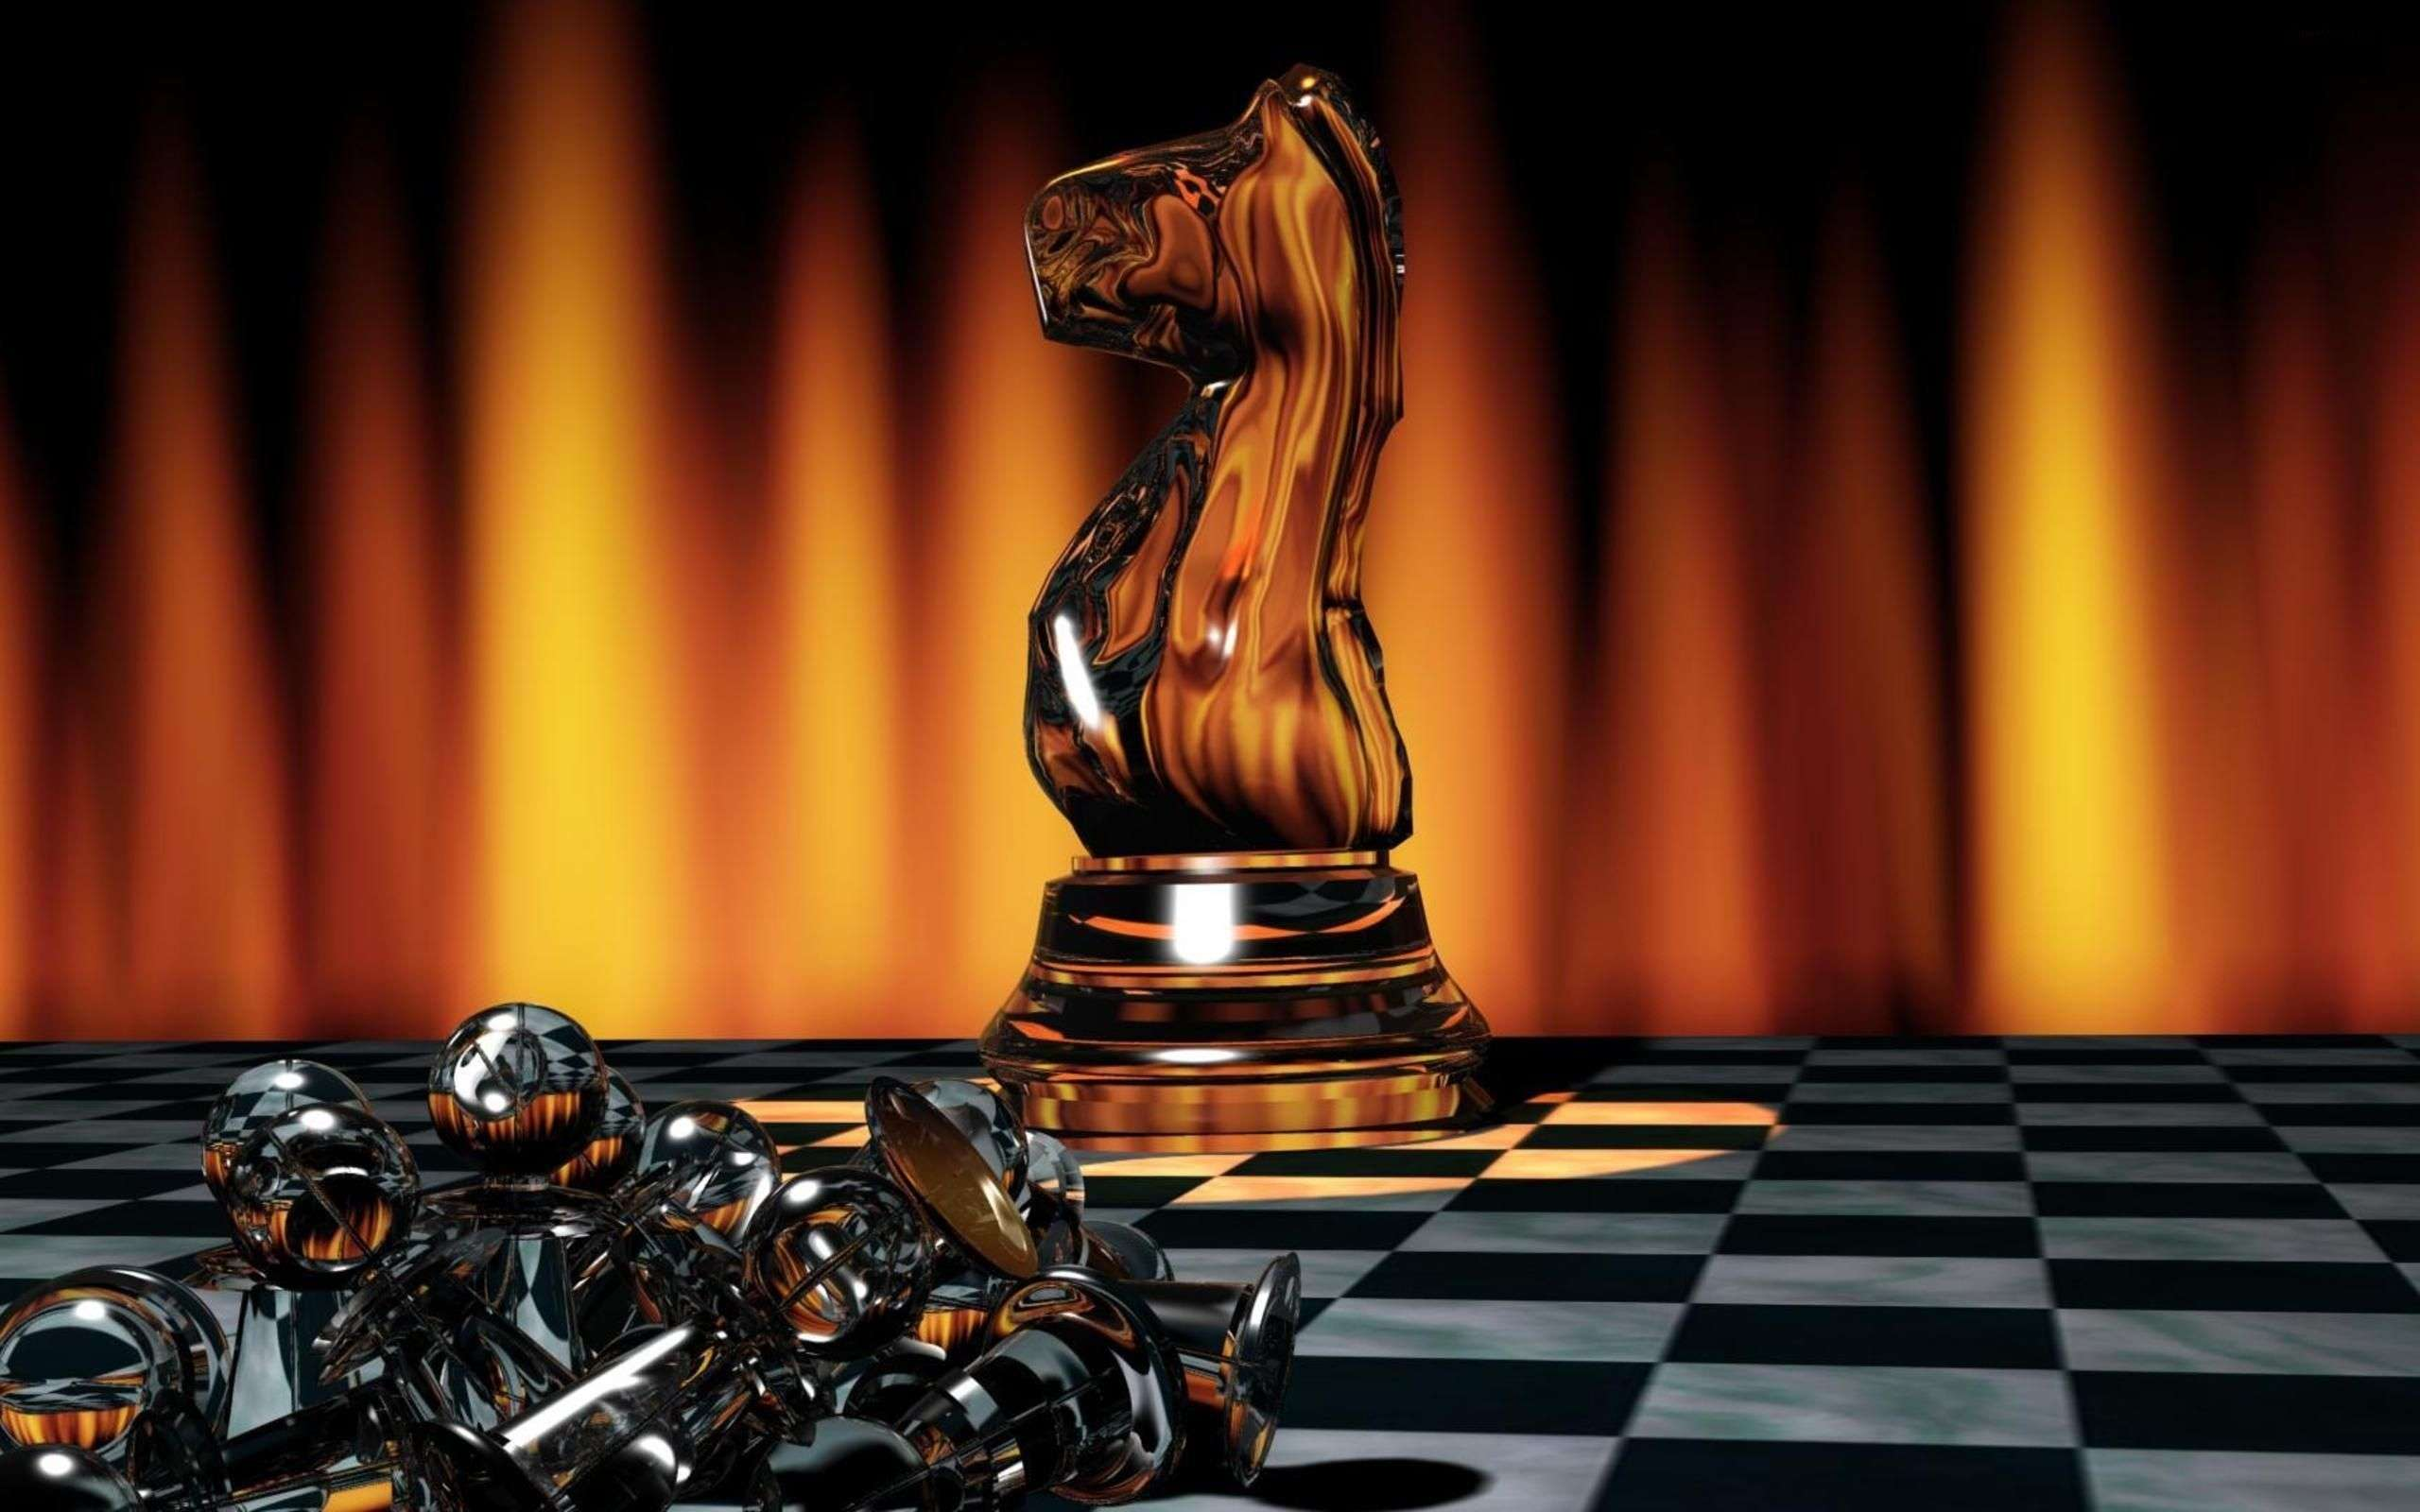 Free Hd Hindu God Wallpapers Chess Chess Pieces Light Hd Wallpapers